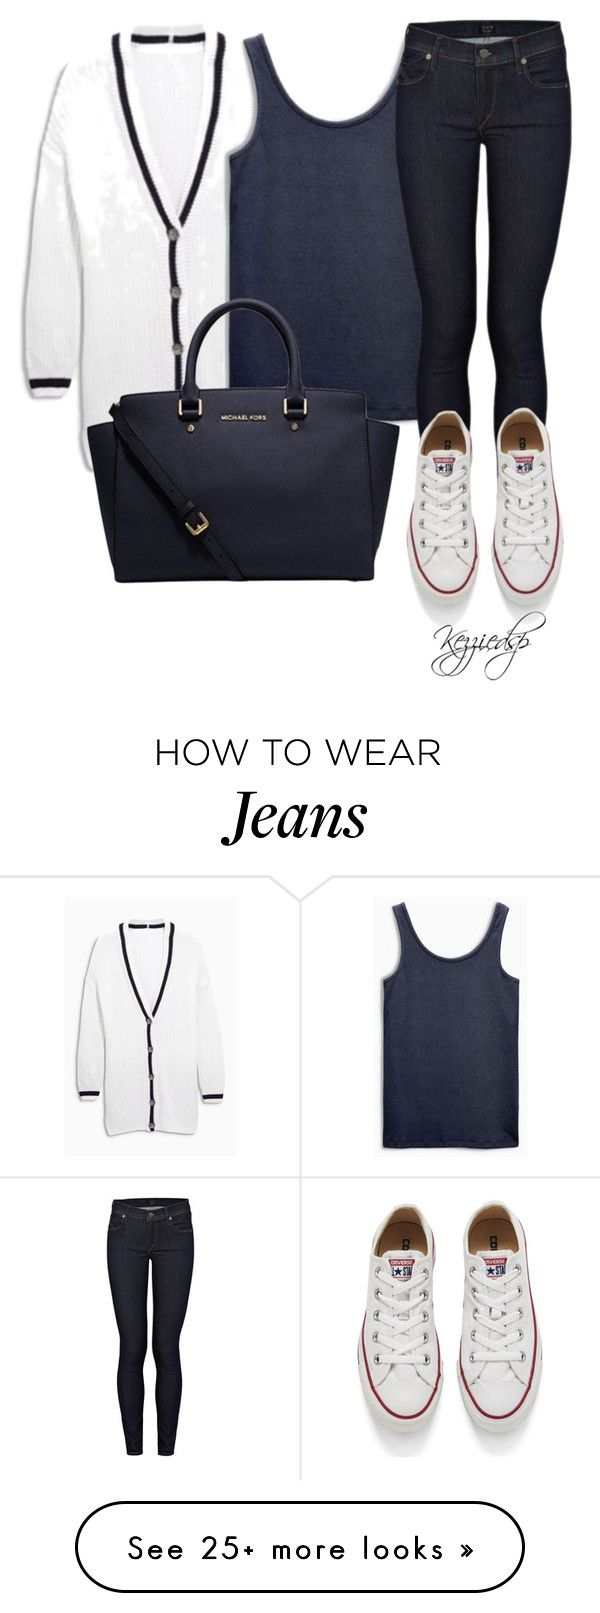 """Next cricket cardigan"" by kezziedsp on Polyvore featuring Citizens of Humanity, Converse, Michael Kors, women's clothing, women, female, woman, misses and juniors"